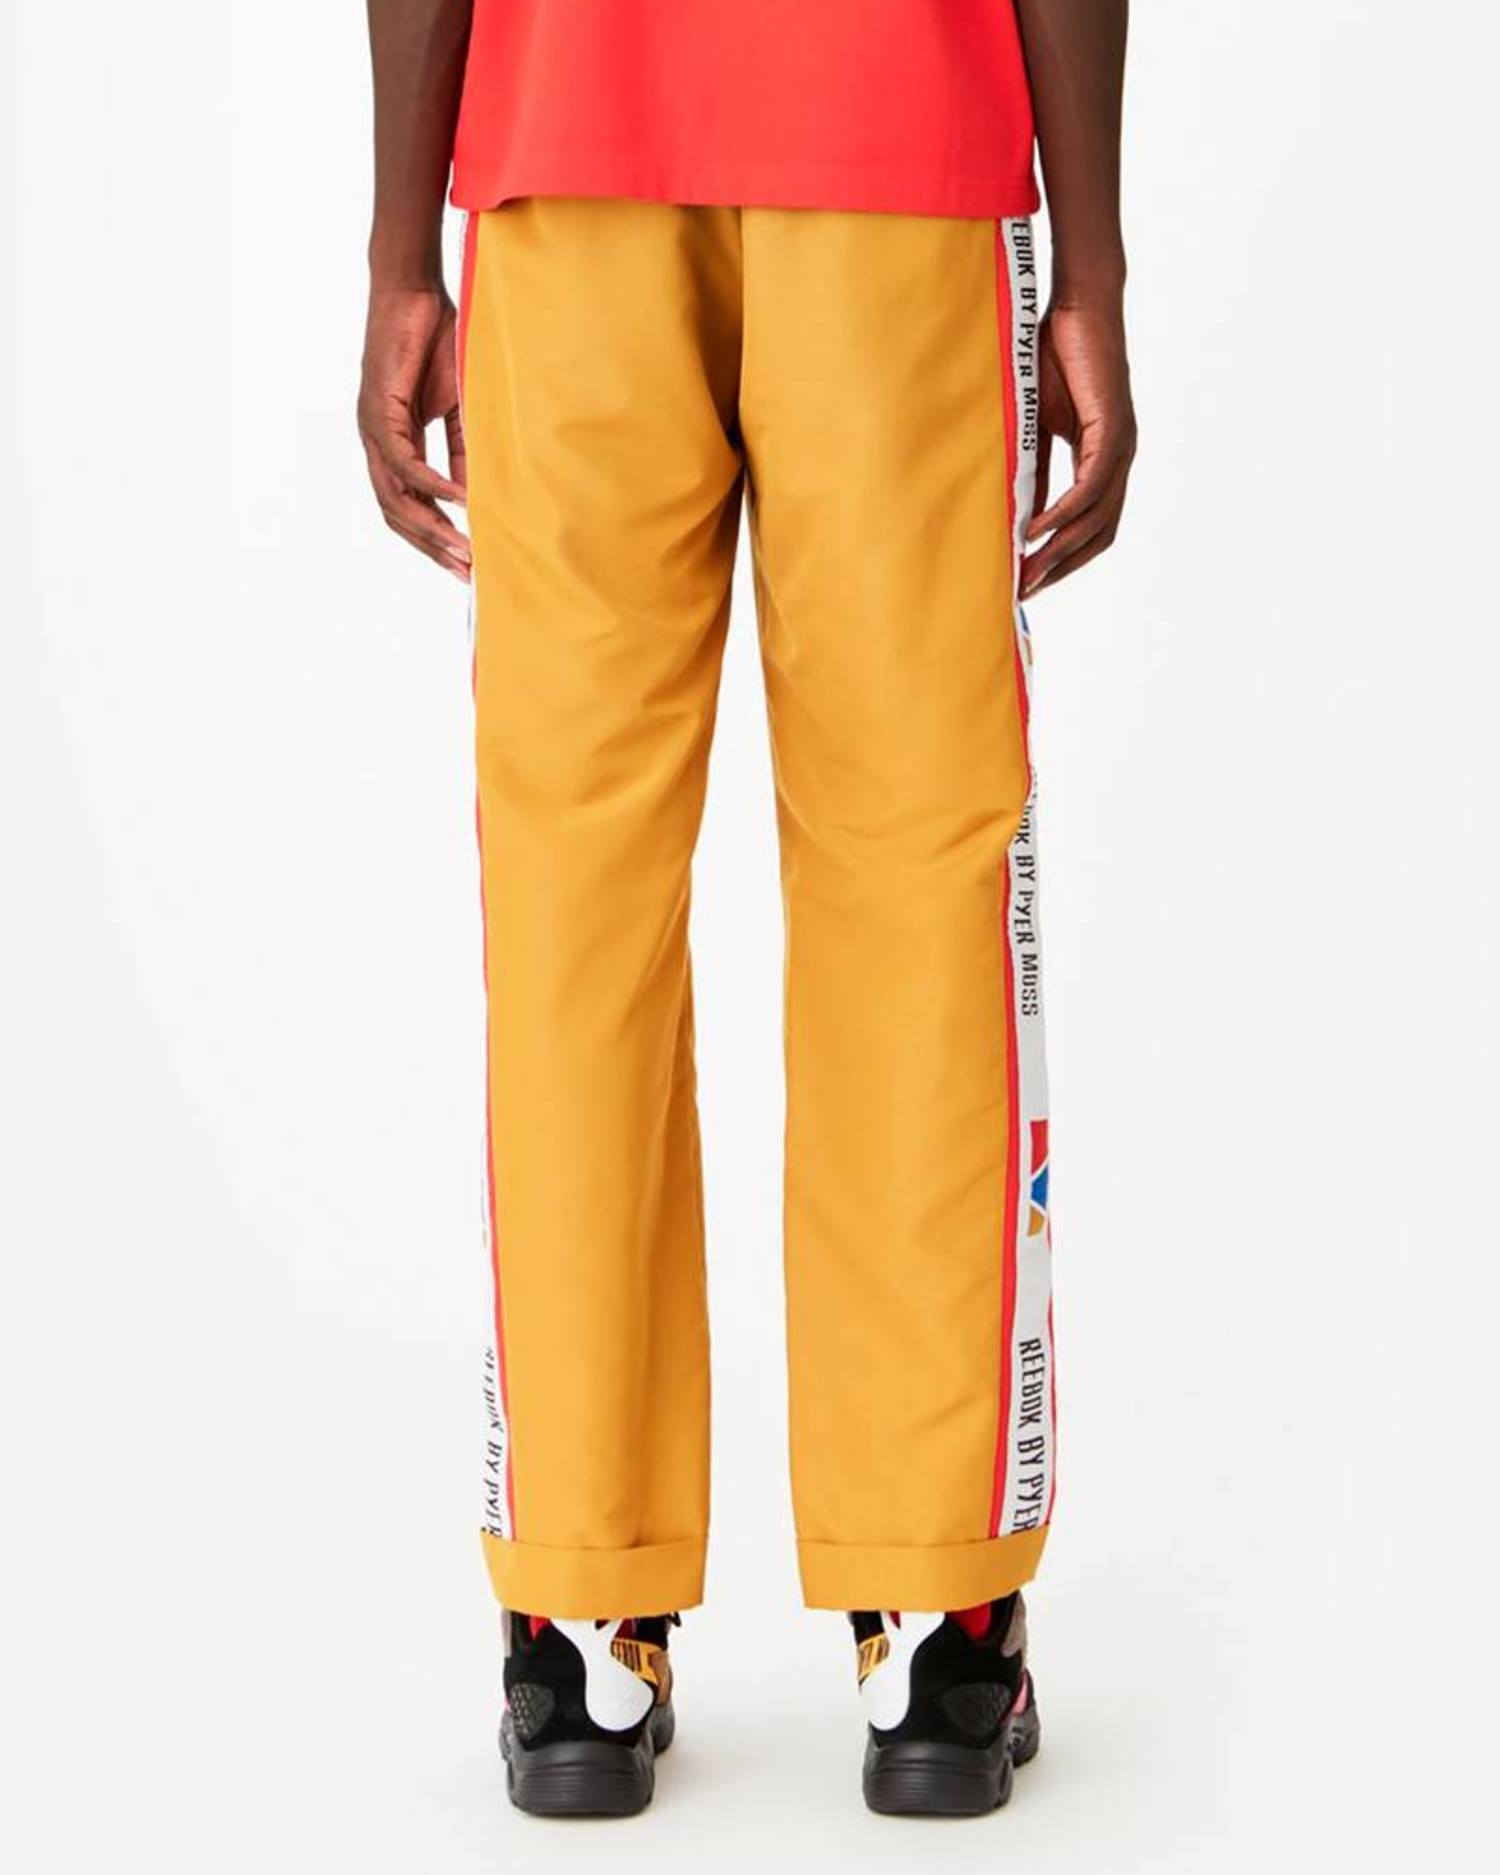 Reebok by Pyer Moss Taped Trousers Wilkha